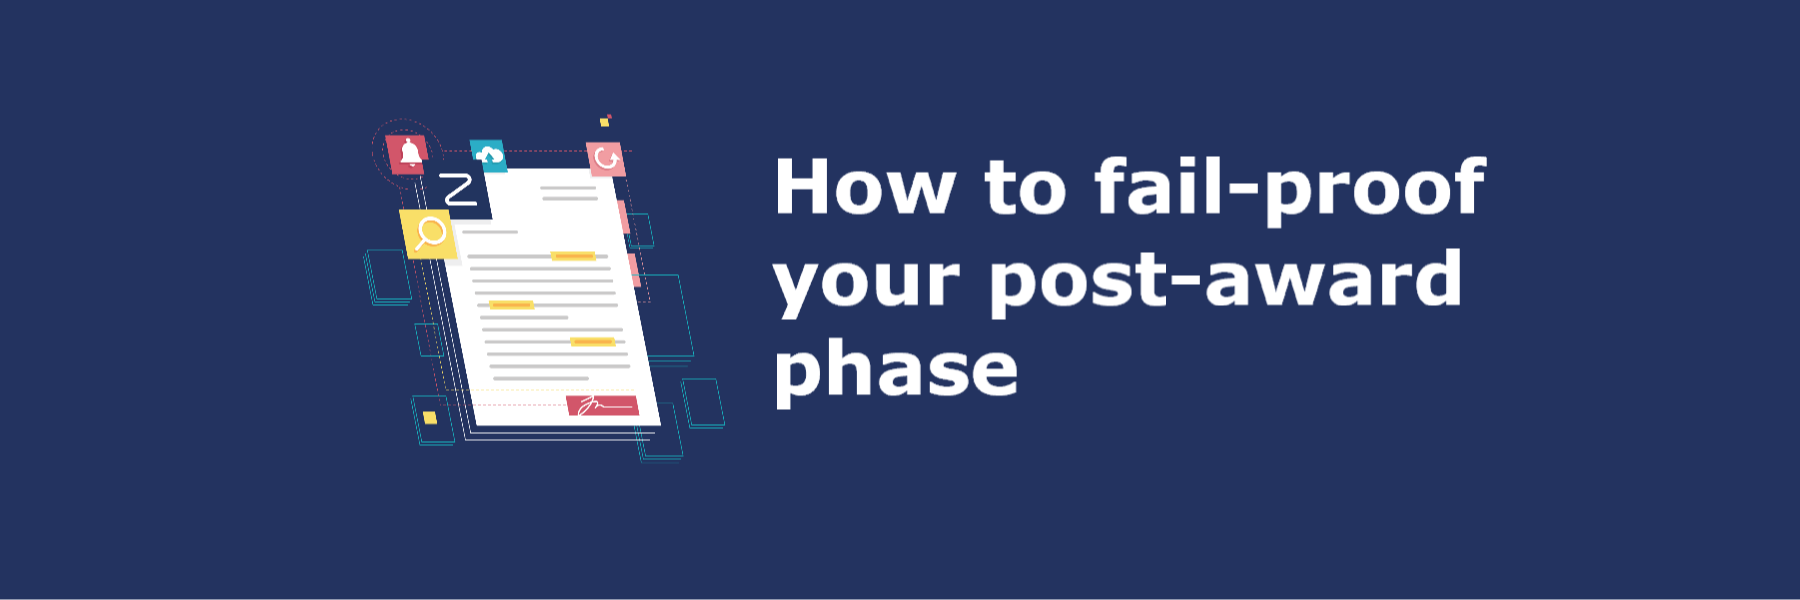 how to fail proof your post award phase - head